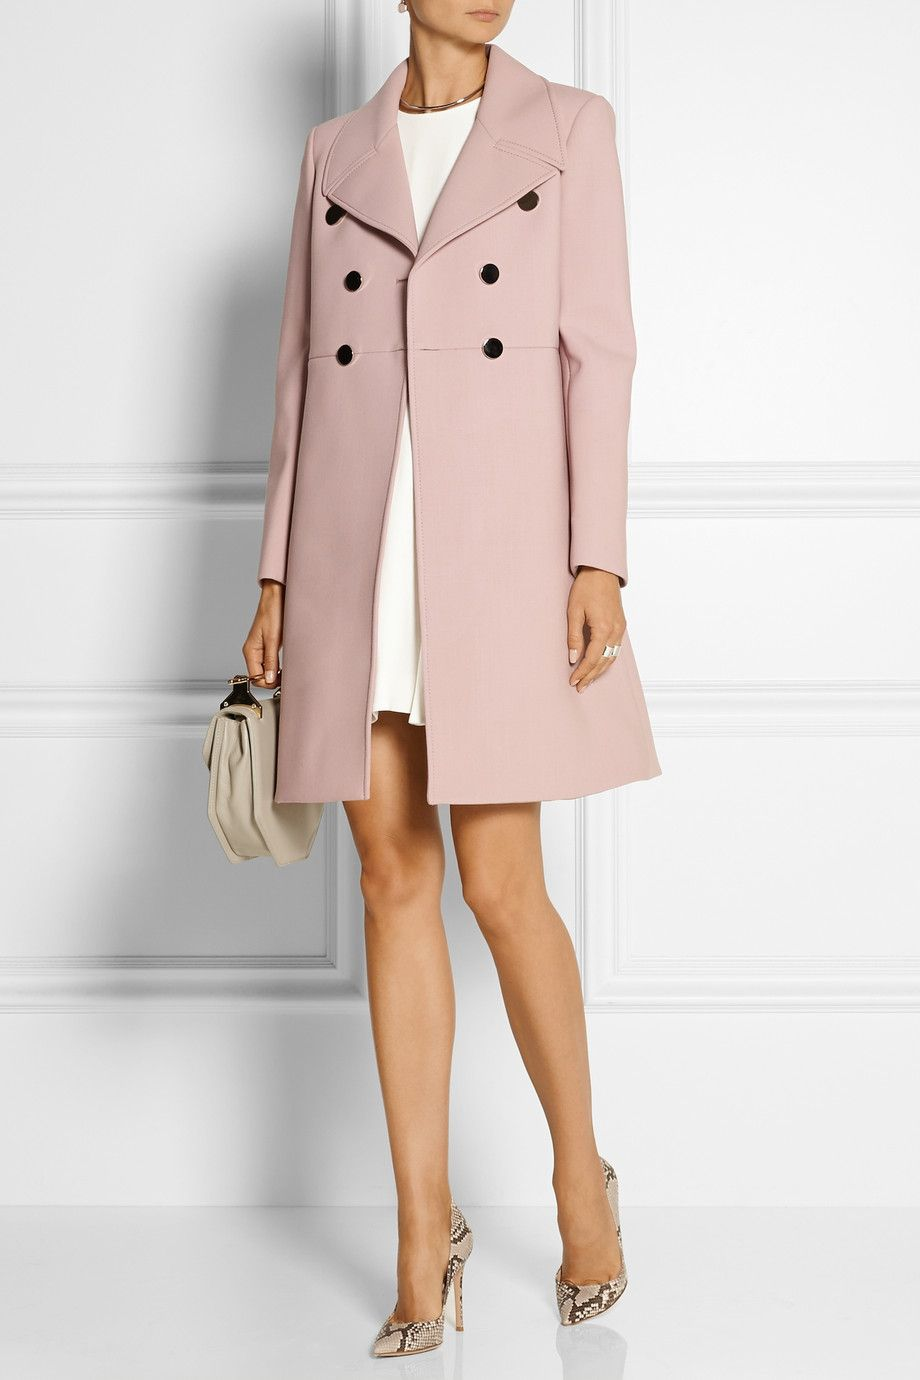 White dress, nude tights & heels, with blush pink coat. An evening ...